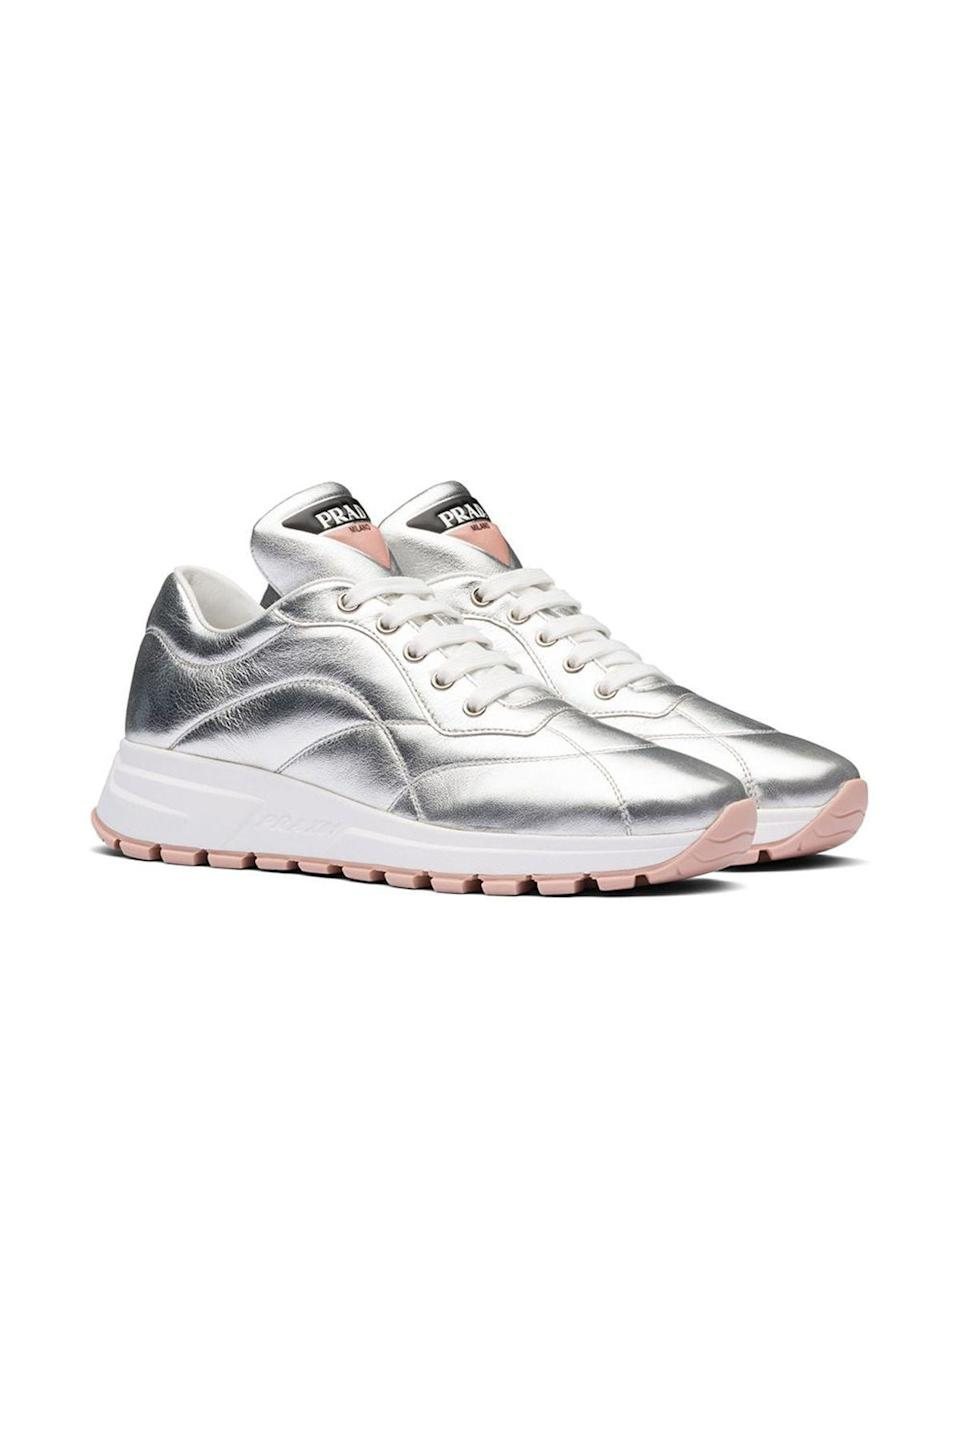 """<p><strong>Prada</strong></p><p>farfetch.com</p><p><strong>$850.00</strong></p><p><a href=""""https://go.redirectingat.com?id=74968X1596630&url=https%3A%2F%2Fwww.farfetch.com%2Fshopping%2Fwomen%2Fprada-metallic-stitched-sneakers-item-14996950.aspx&sref=https%3A%2F%2Fwww.townandcountrymag.com%2Fstyle%2Ffashion-trends%2Fg36544376%2Fbest-metallic-accessories%2F"""" rel=""""nofollow noopener"""" target=""""_blank"""" data-ylk=""""slk:Shop Now"""" class=""""link rapid-noclick-resp"""">Shop Now</a></p><p>Prada sneakers are the ultimate in athleisure style, from the nylon triangle logo to the stitched silver panels. </p>"""